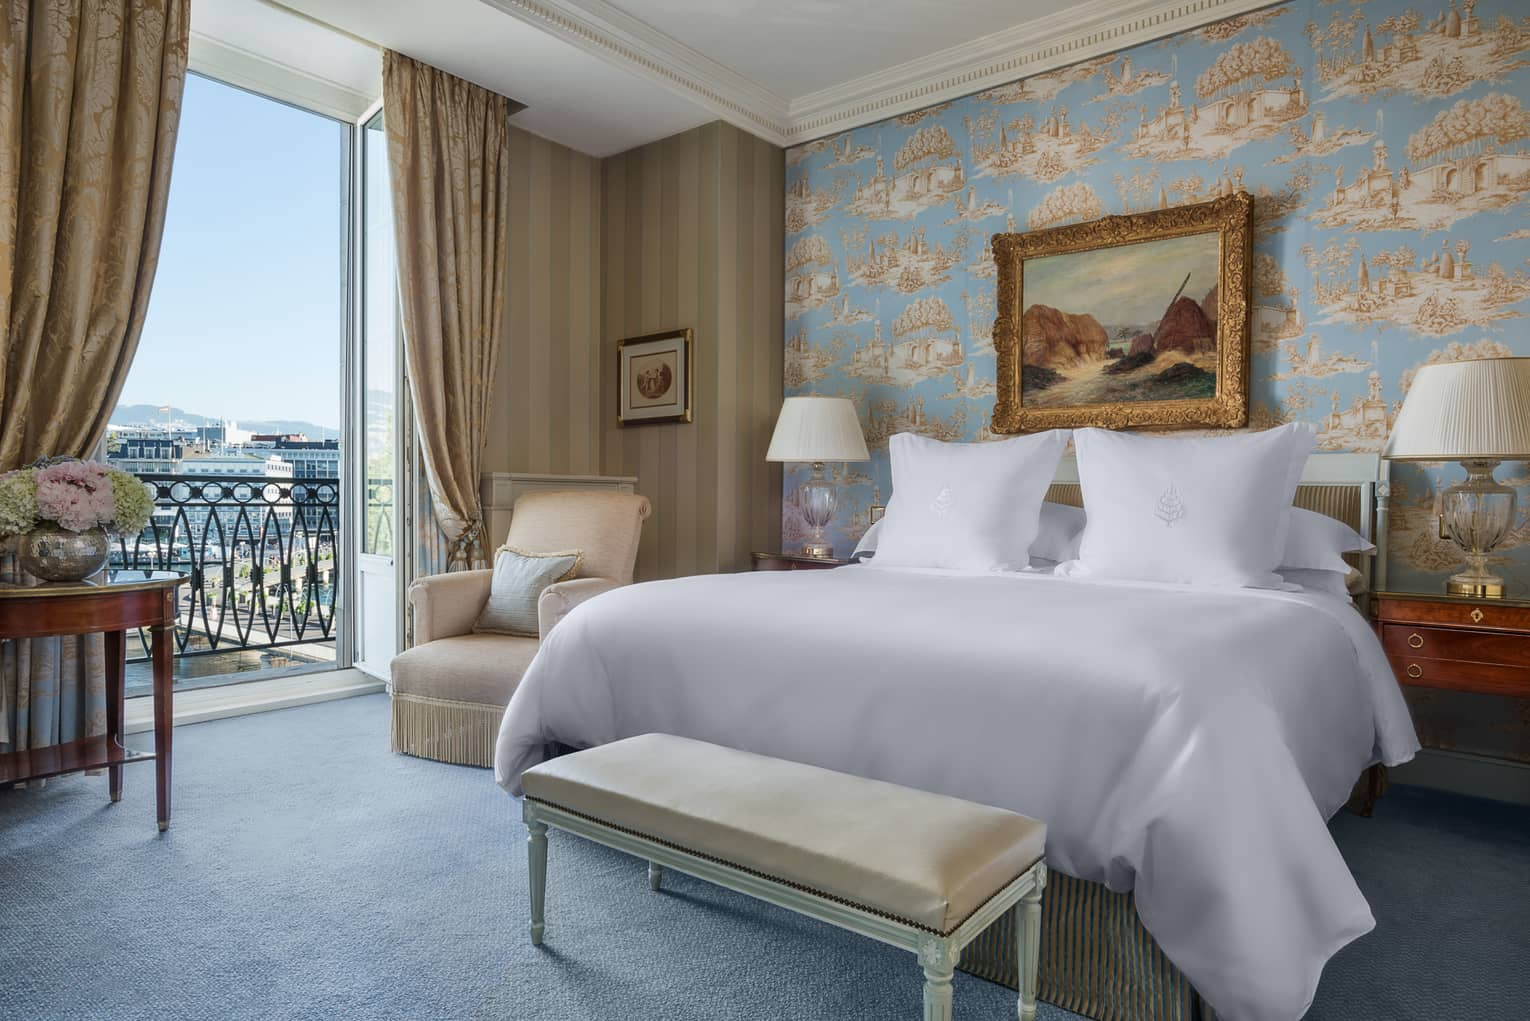 Suite Léman with antique-style blue wallpaper, painting with gold frame above bed next to open French doors with lake view